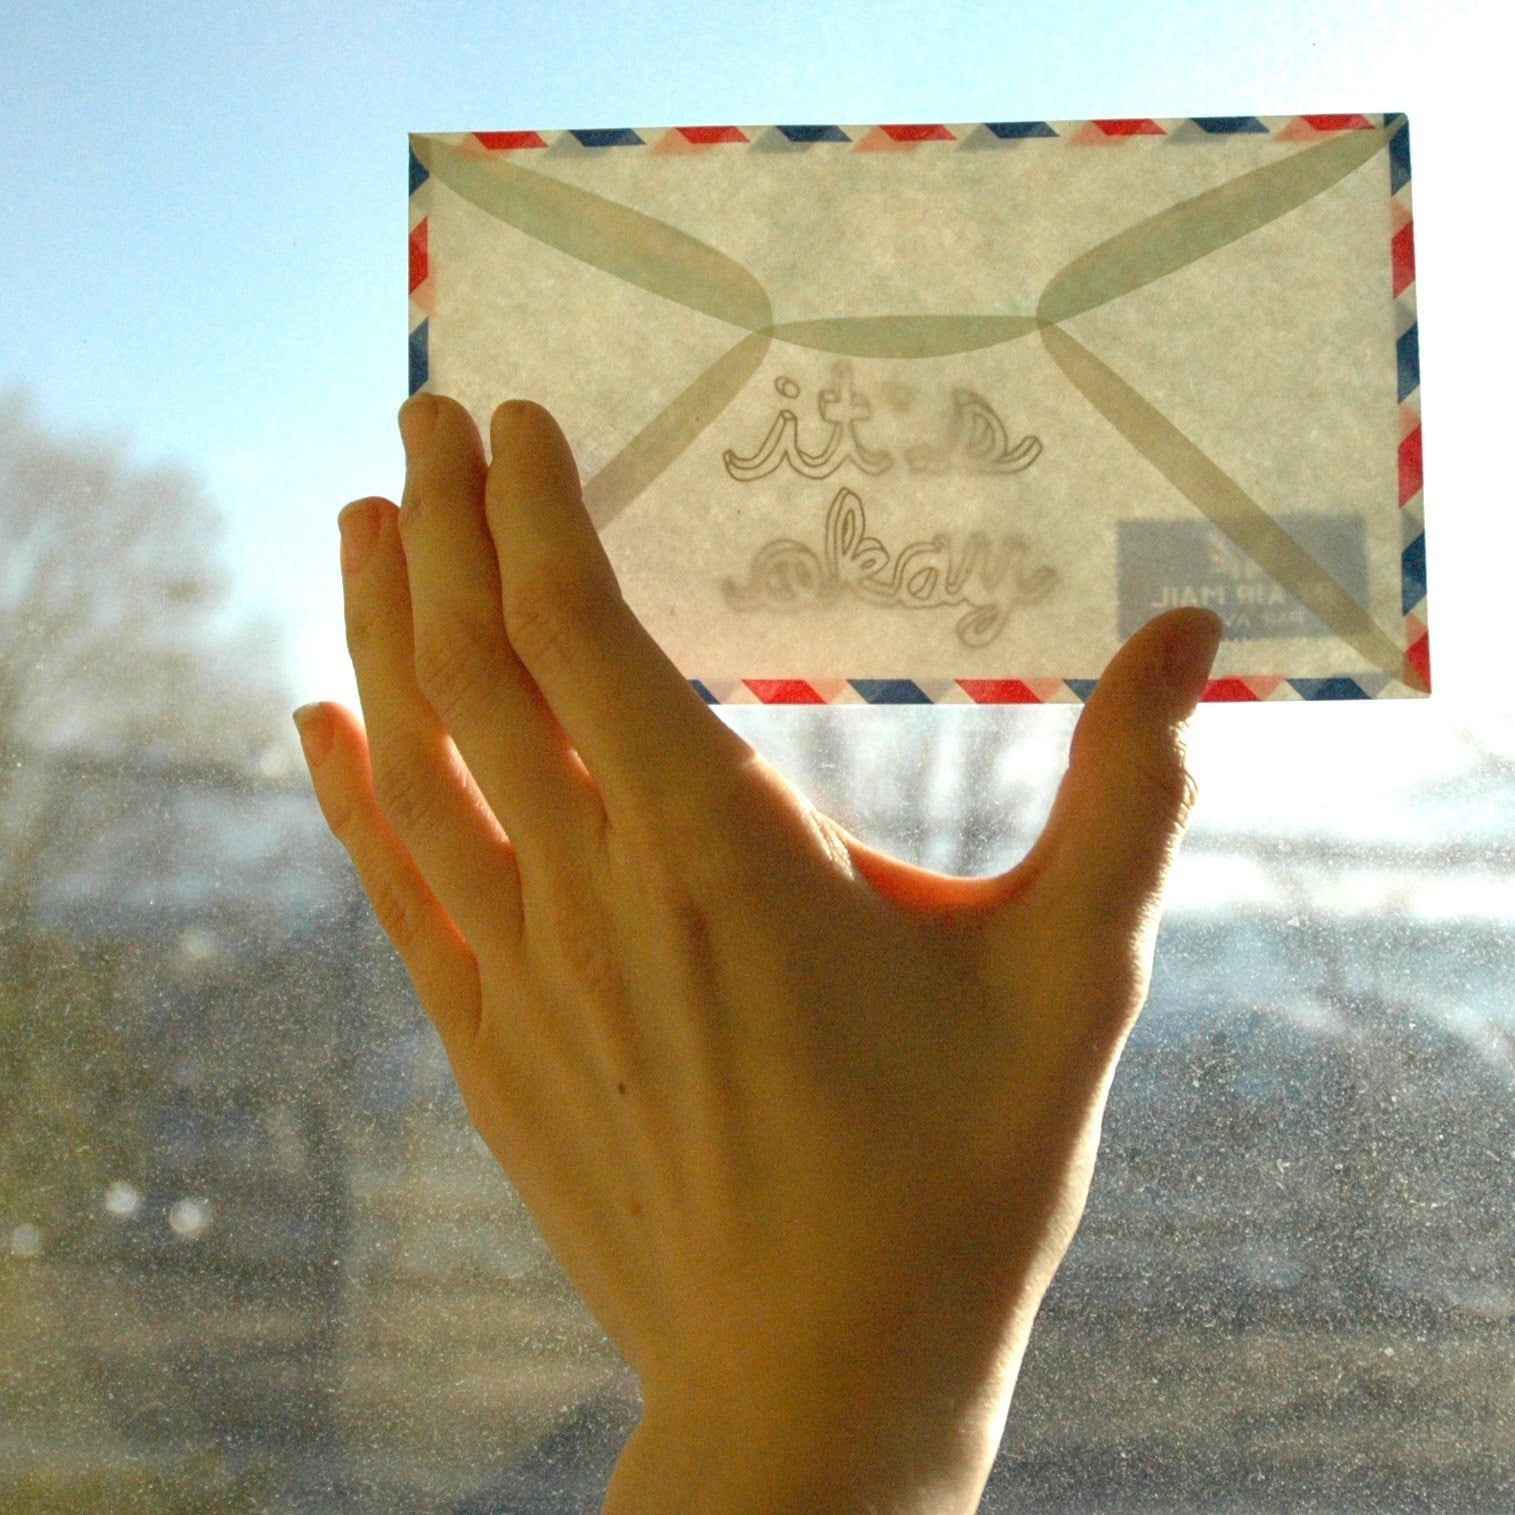 secret message envelope - it's okay